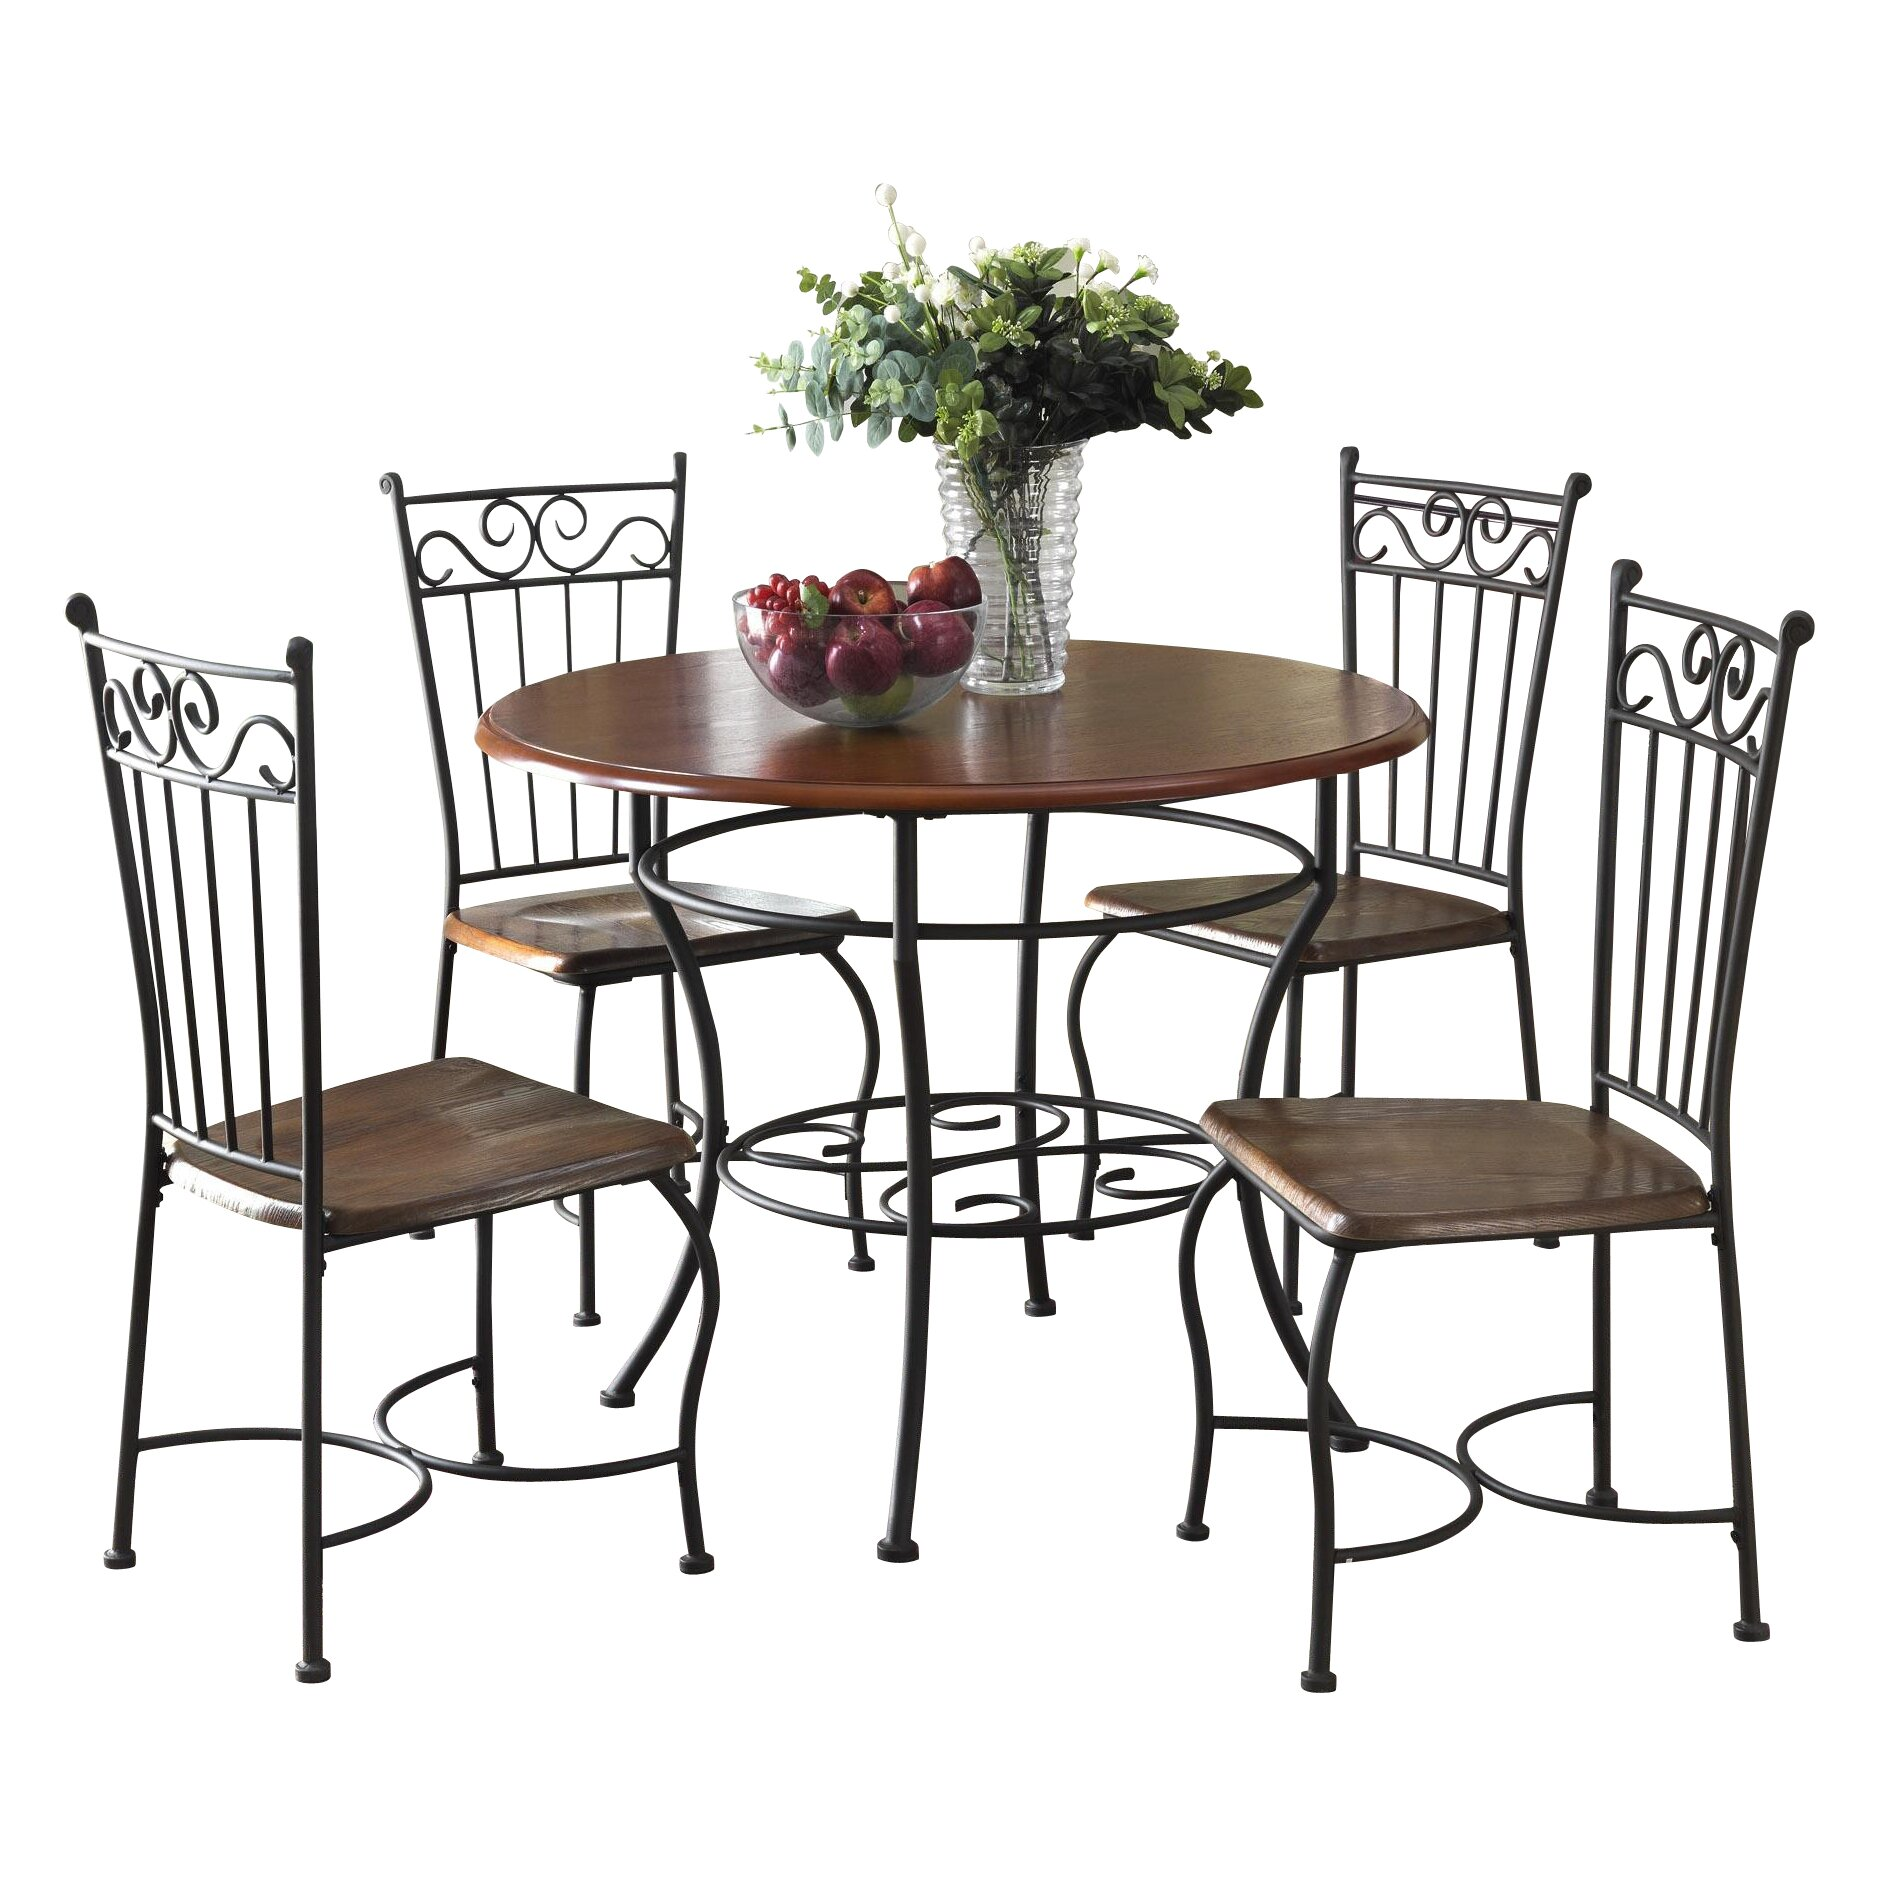 Dorel living 5 piece dining set reviews wayfair for Living room 5 piece sets